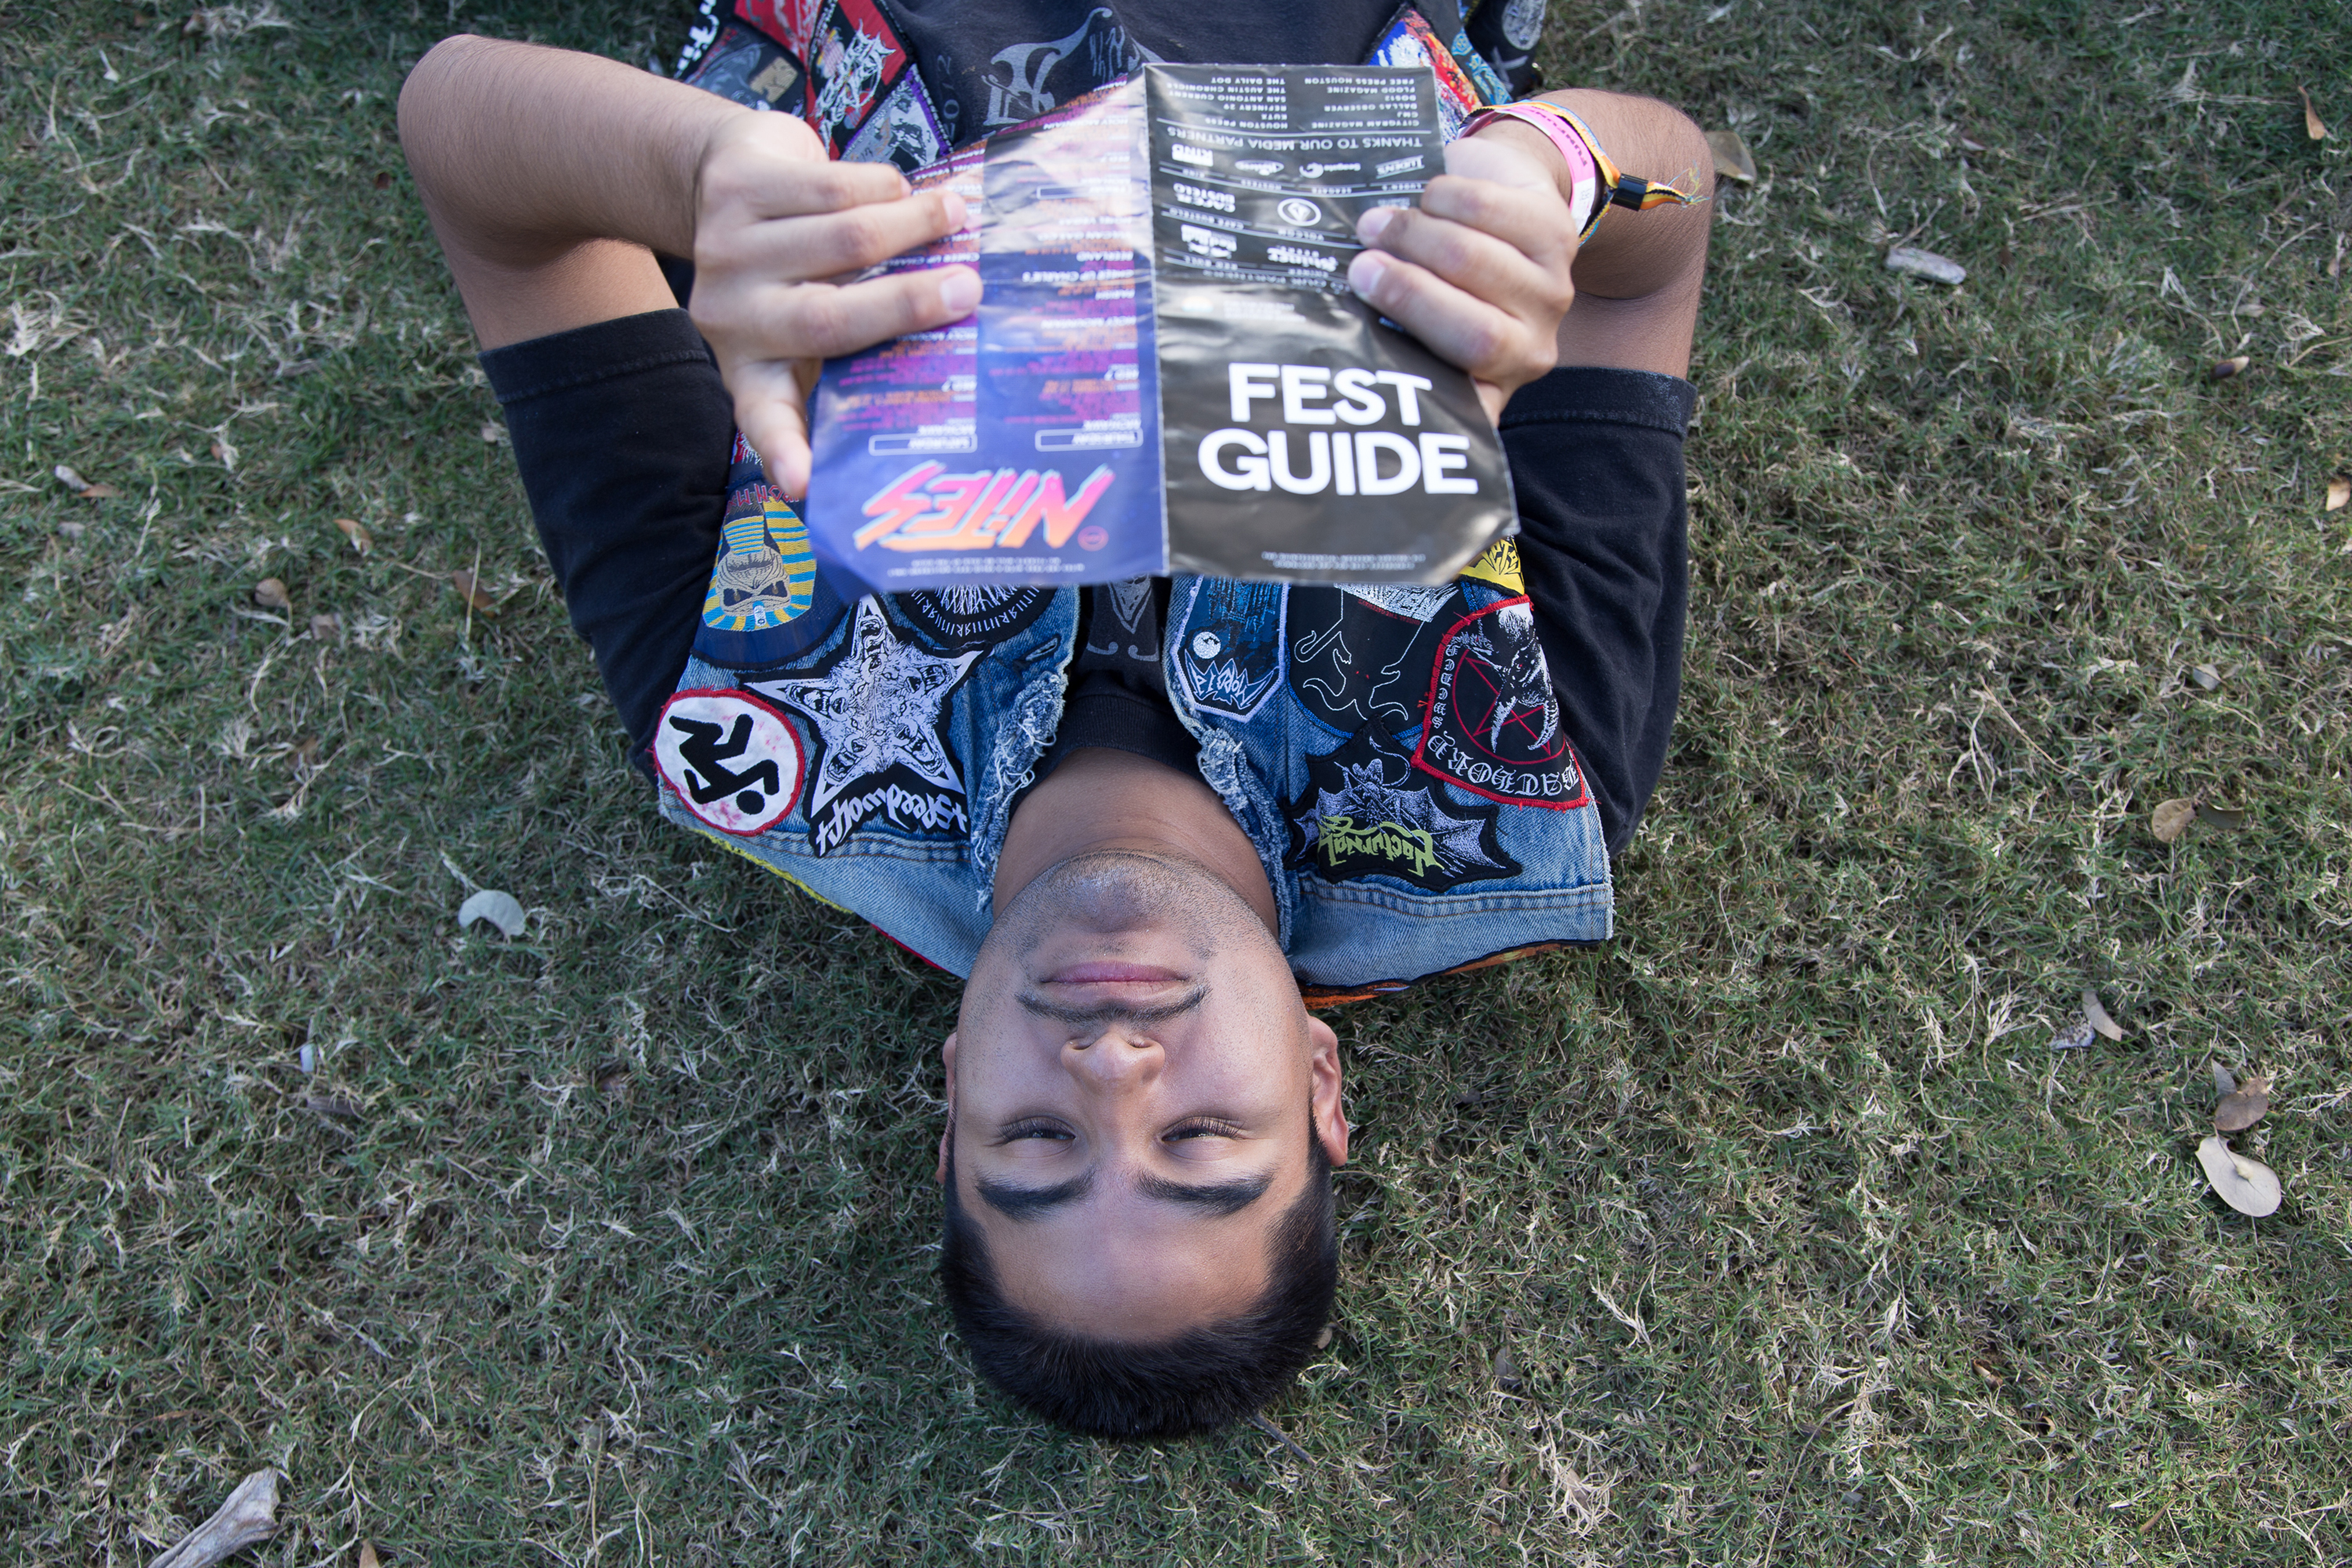 Reading the Fun Fun Fun Fest Guide